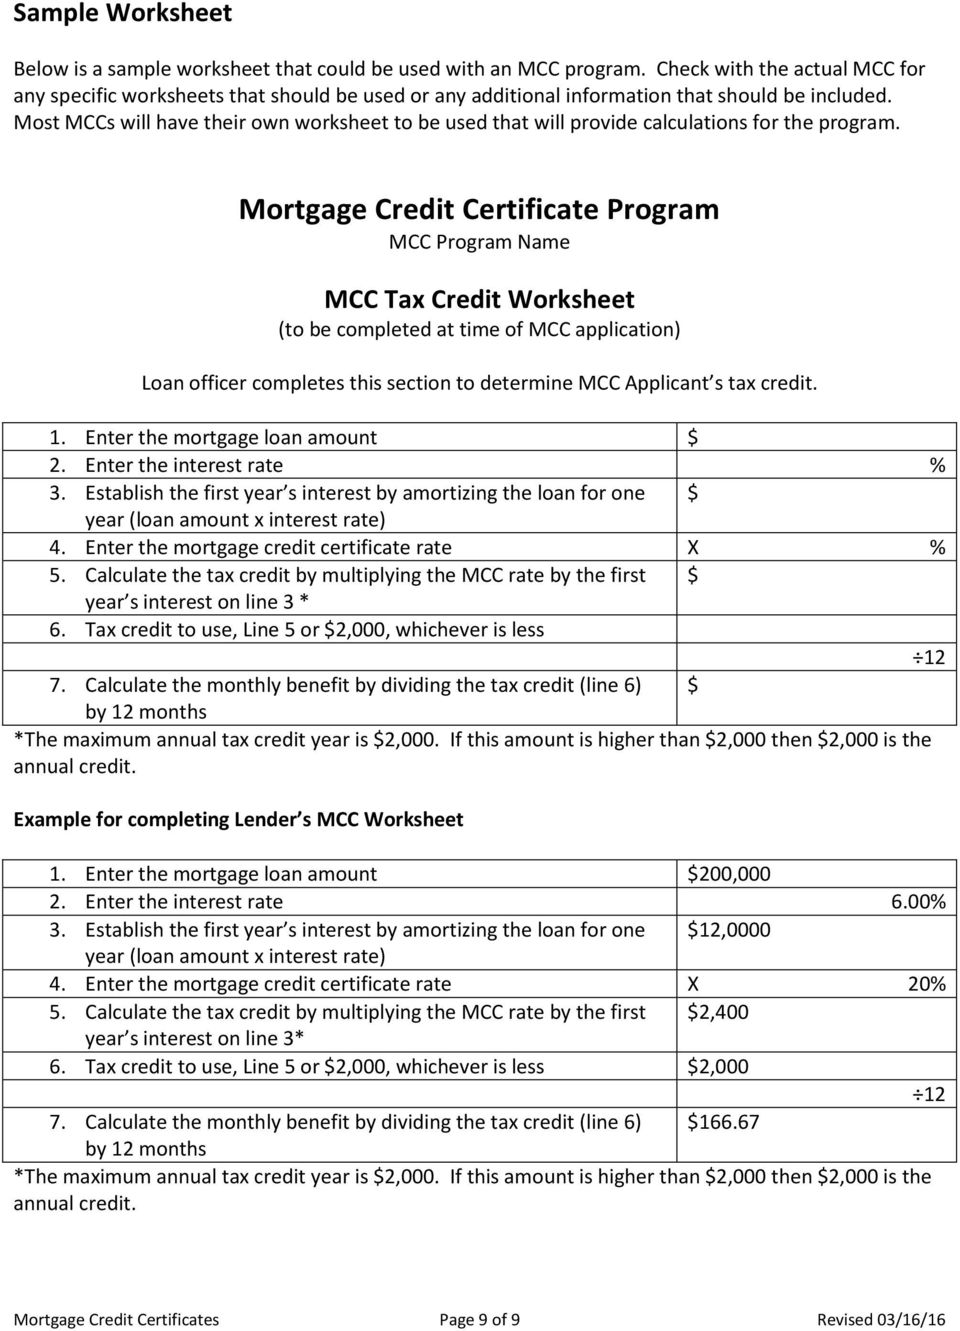 Mortgage Credit Certificates Pdf